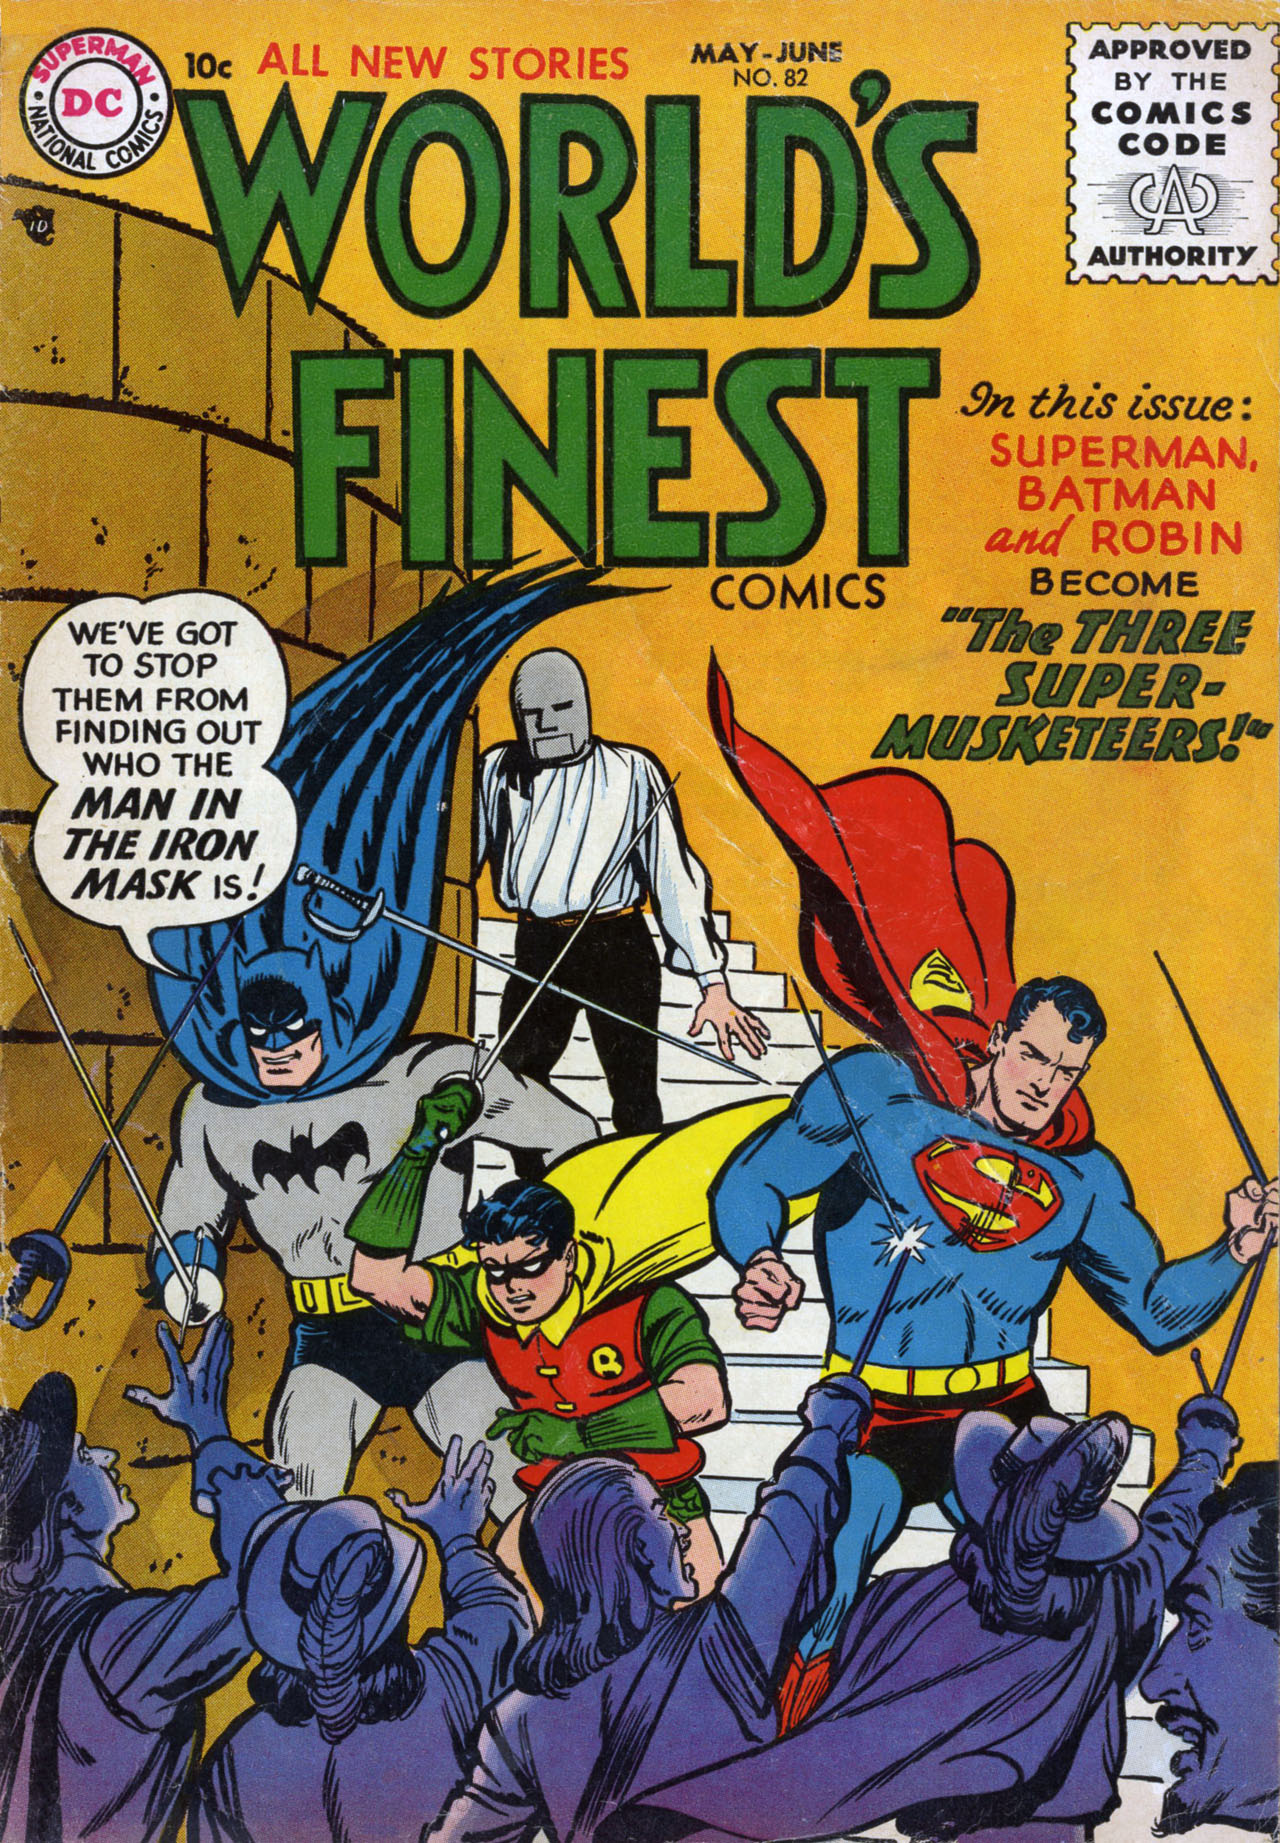 World's Finest Vol 1 82